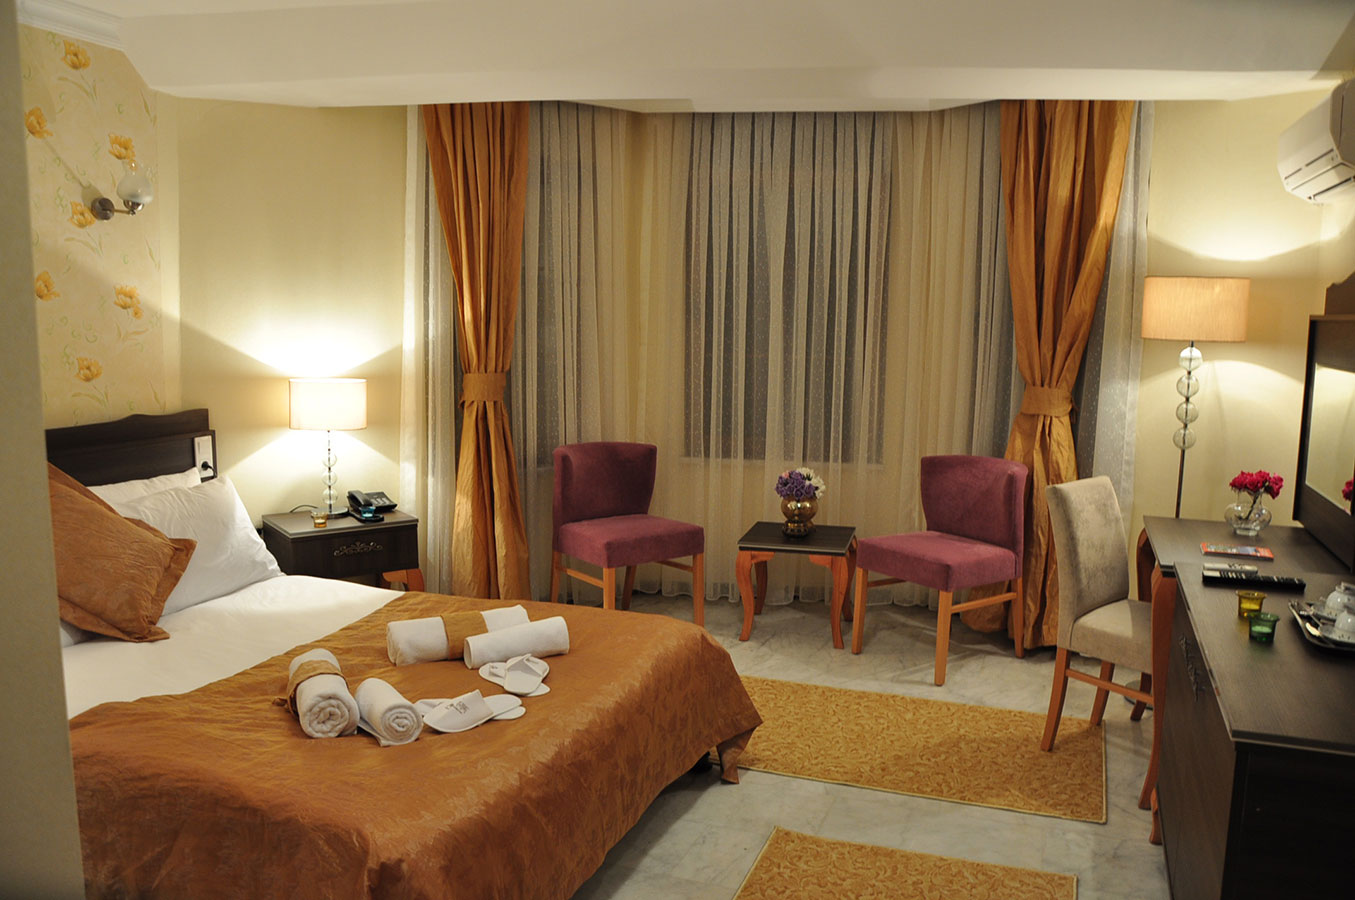 Guest house harbiye istanbul turkey for Guest house harbiye